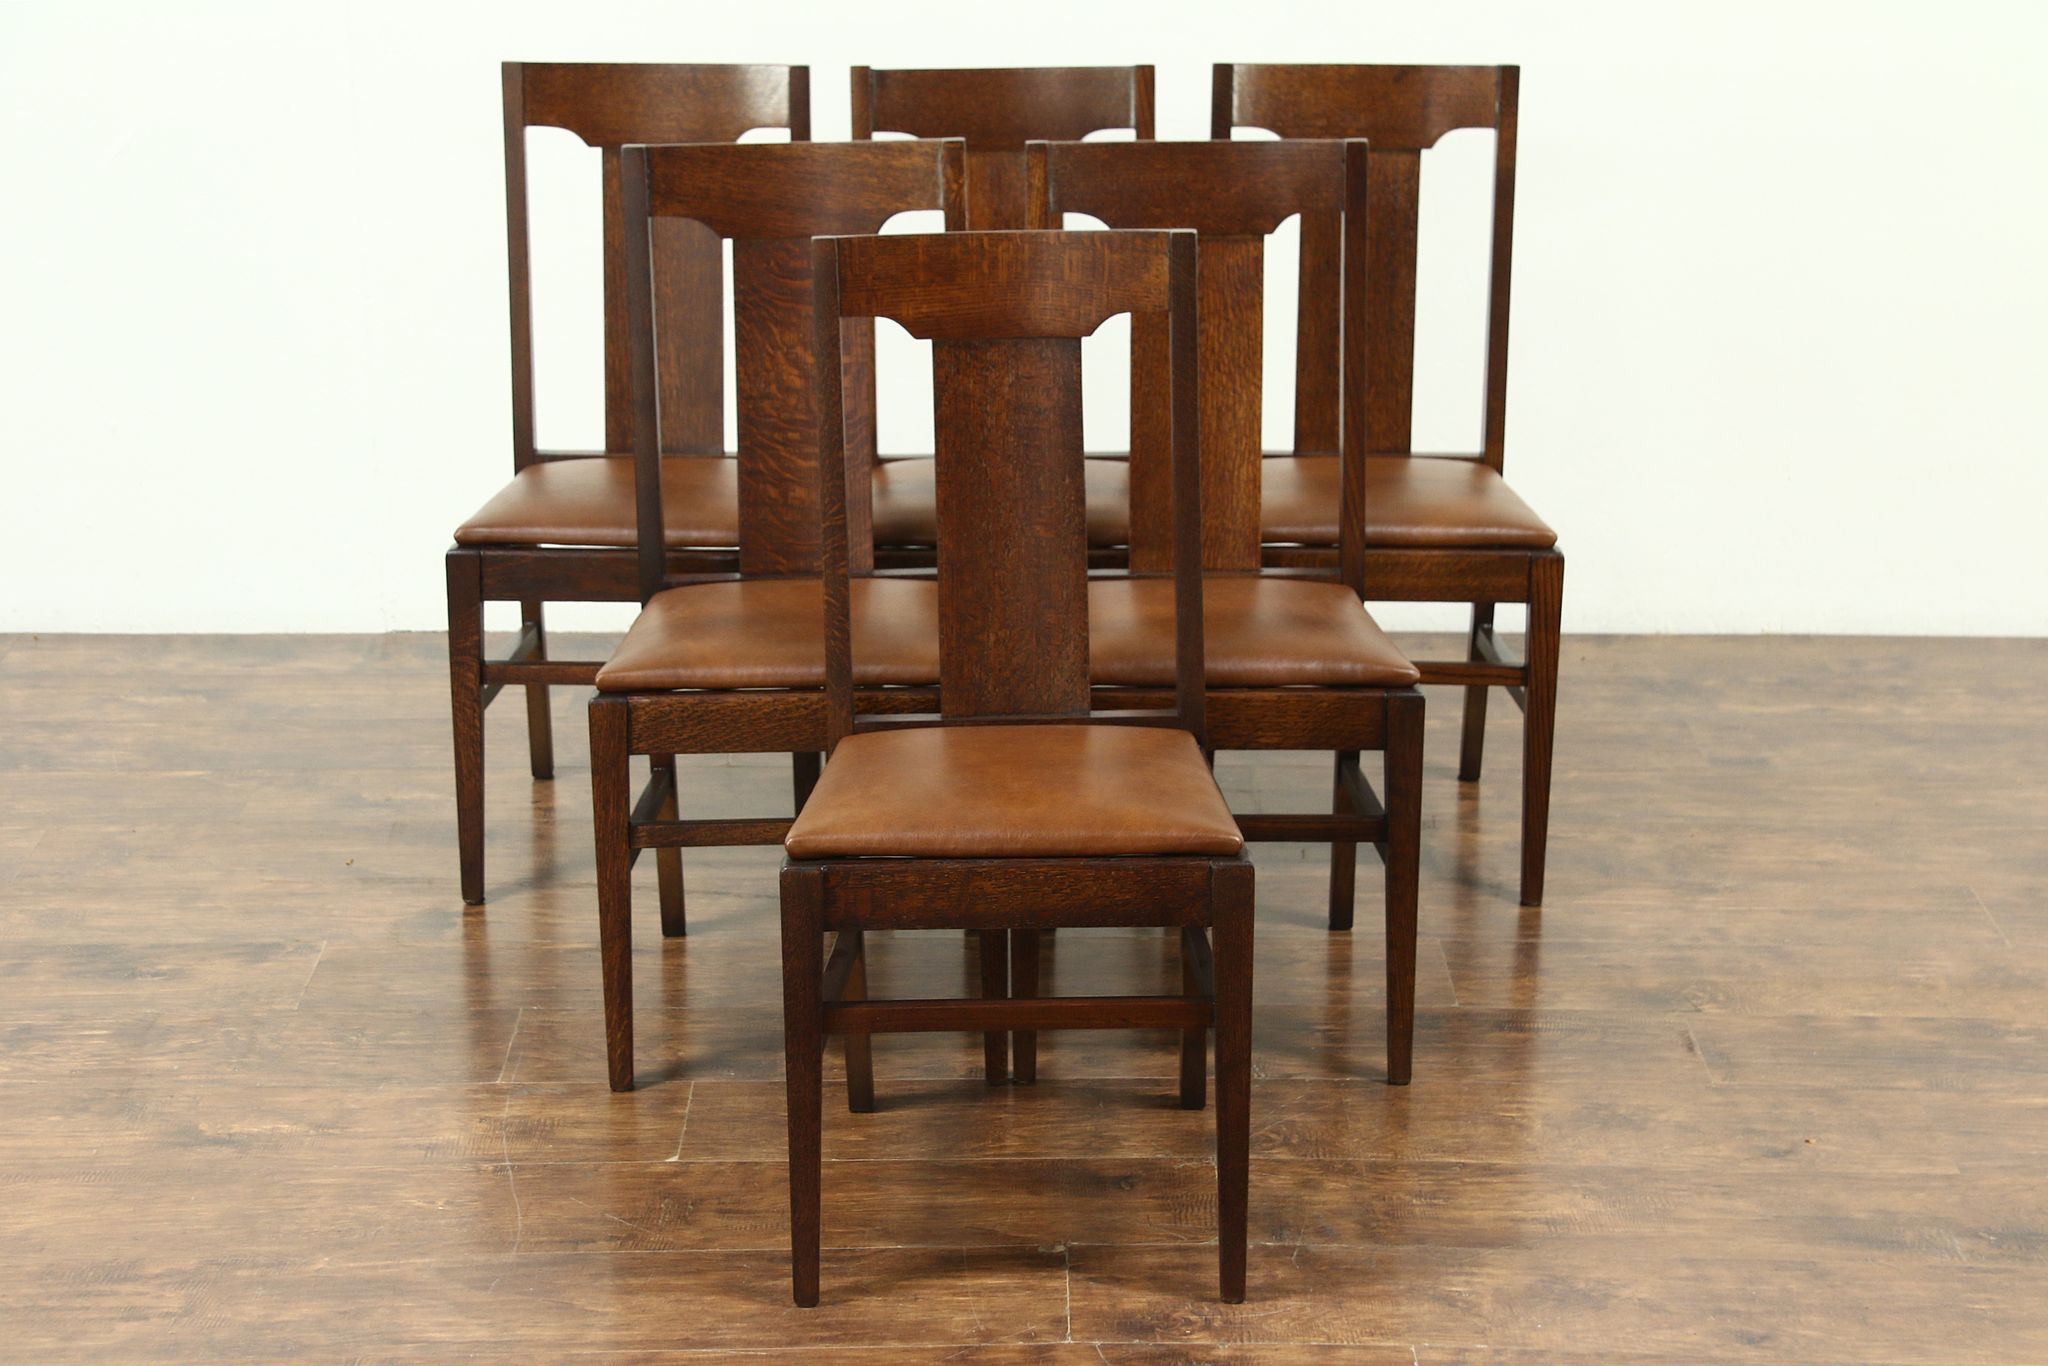 Set 6 Arts u0026 Crafts Mission Oak Antique Craftsman Dining Chairs Leather #28678 ... : oak antique chairs - Cheerinfomania.Com